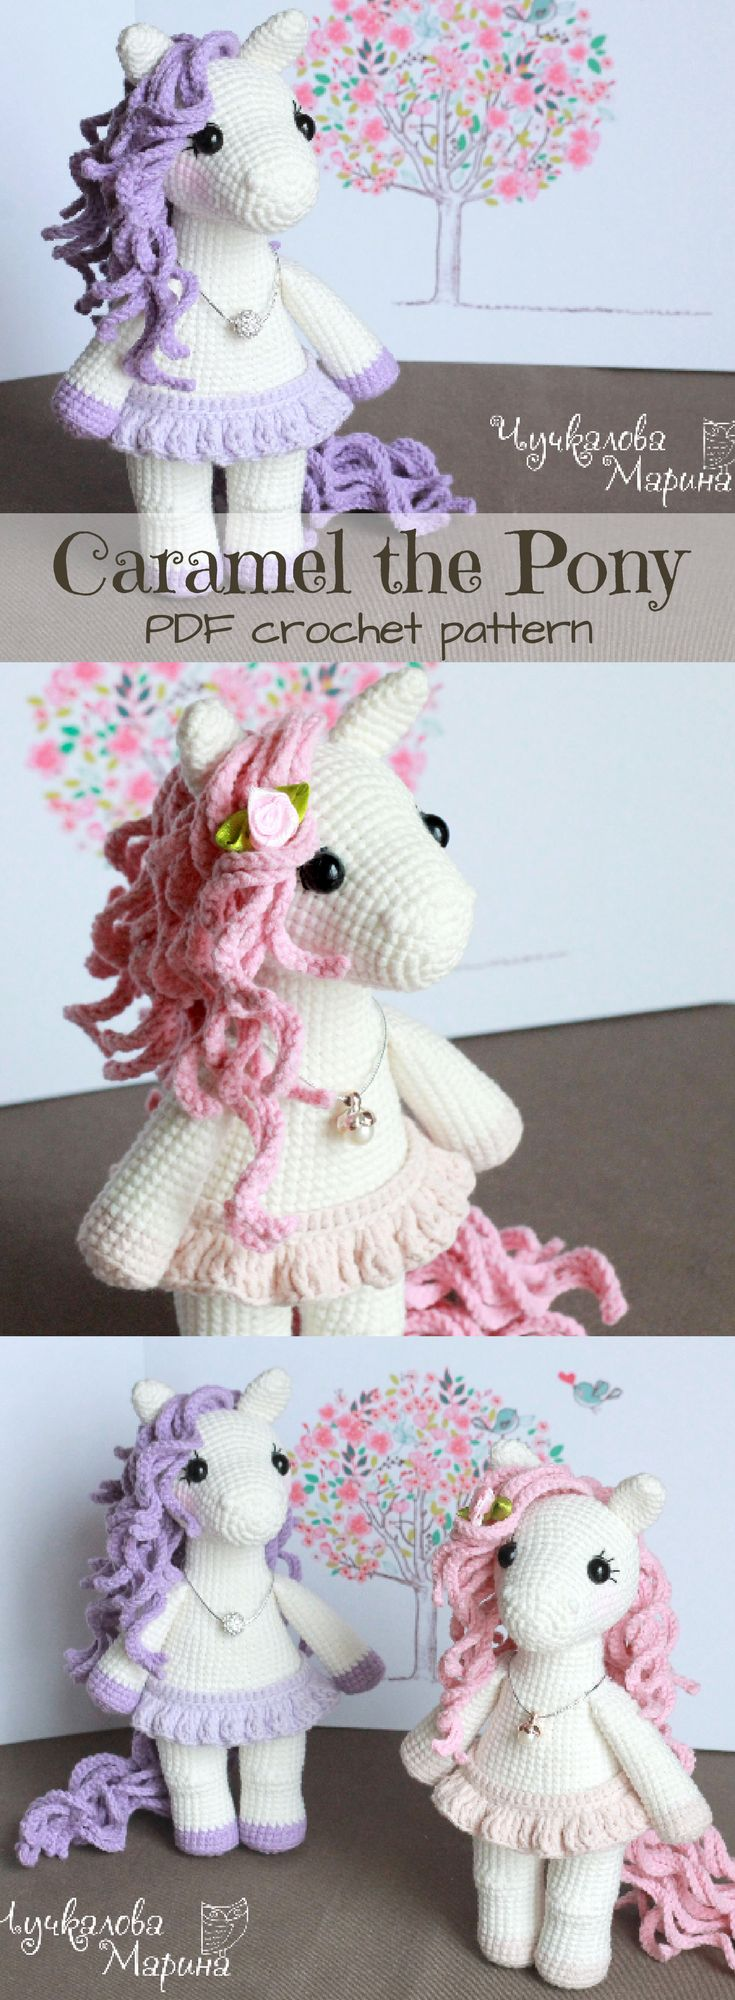 Crochet Patterns What a gorgeous crochet pattern!!! I love this horse stuffed animal's long curly...